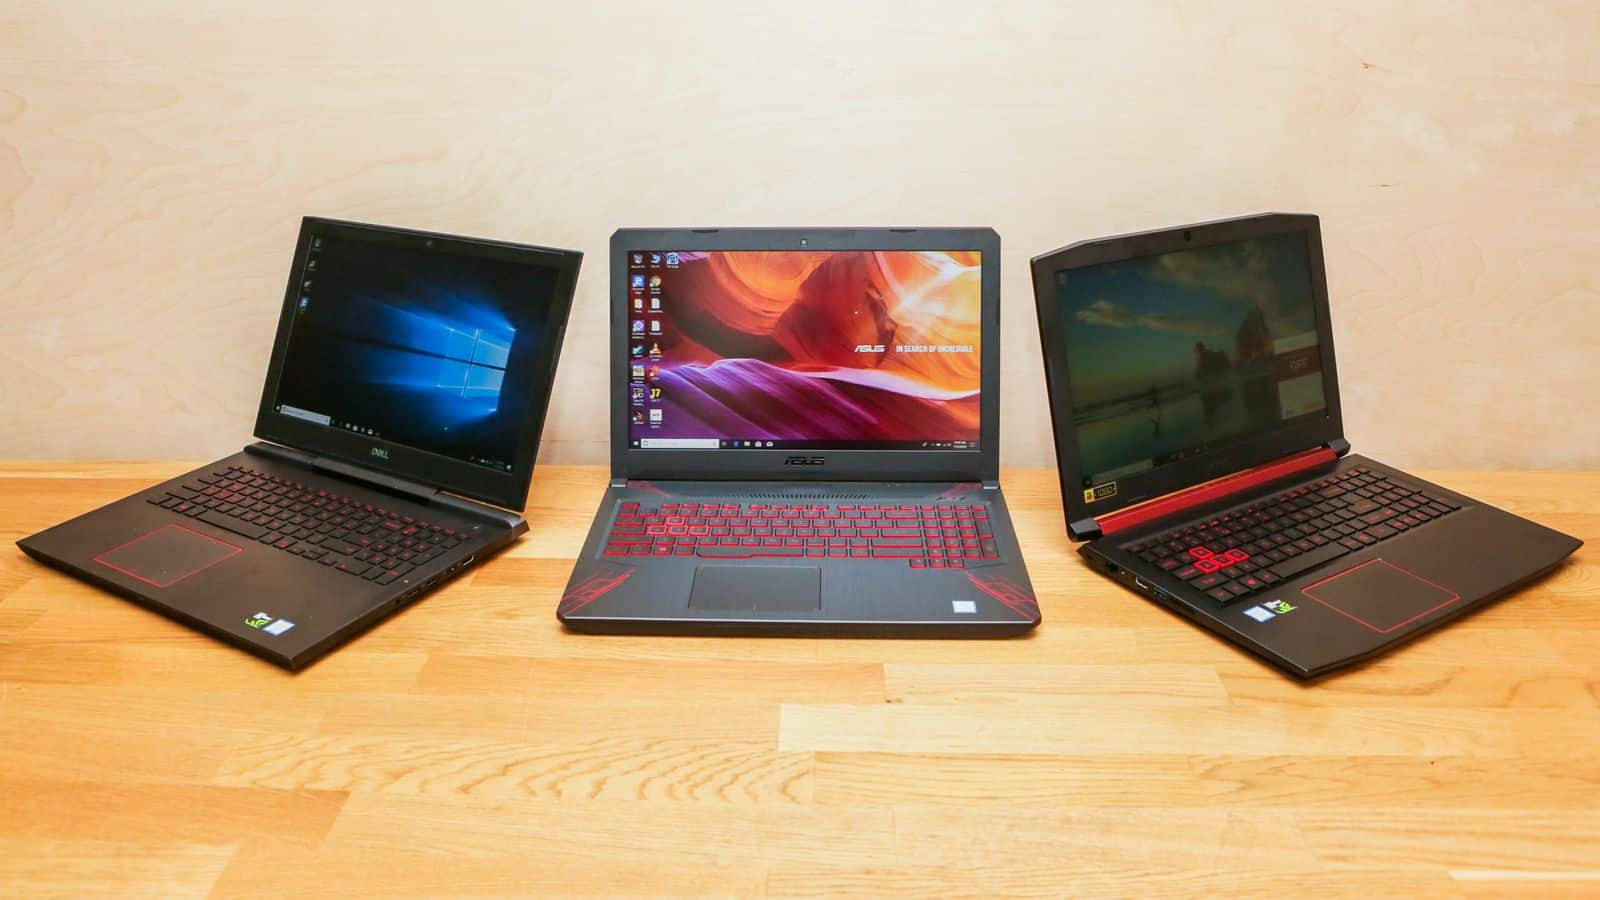 Top 10 Best Laptops Under $1000 for 2021